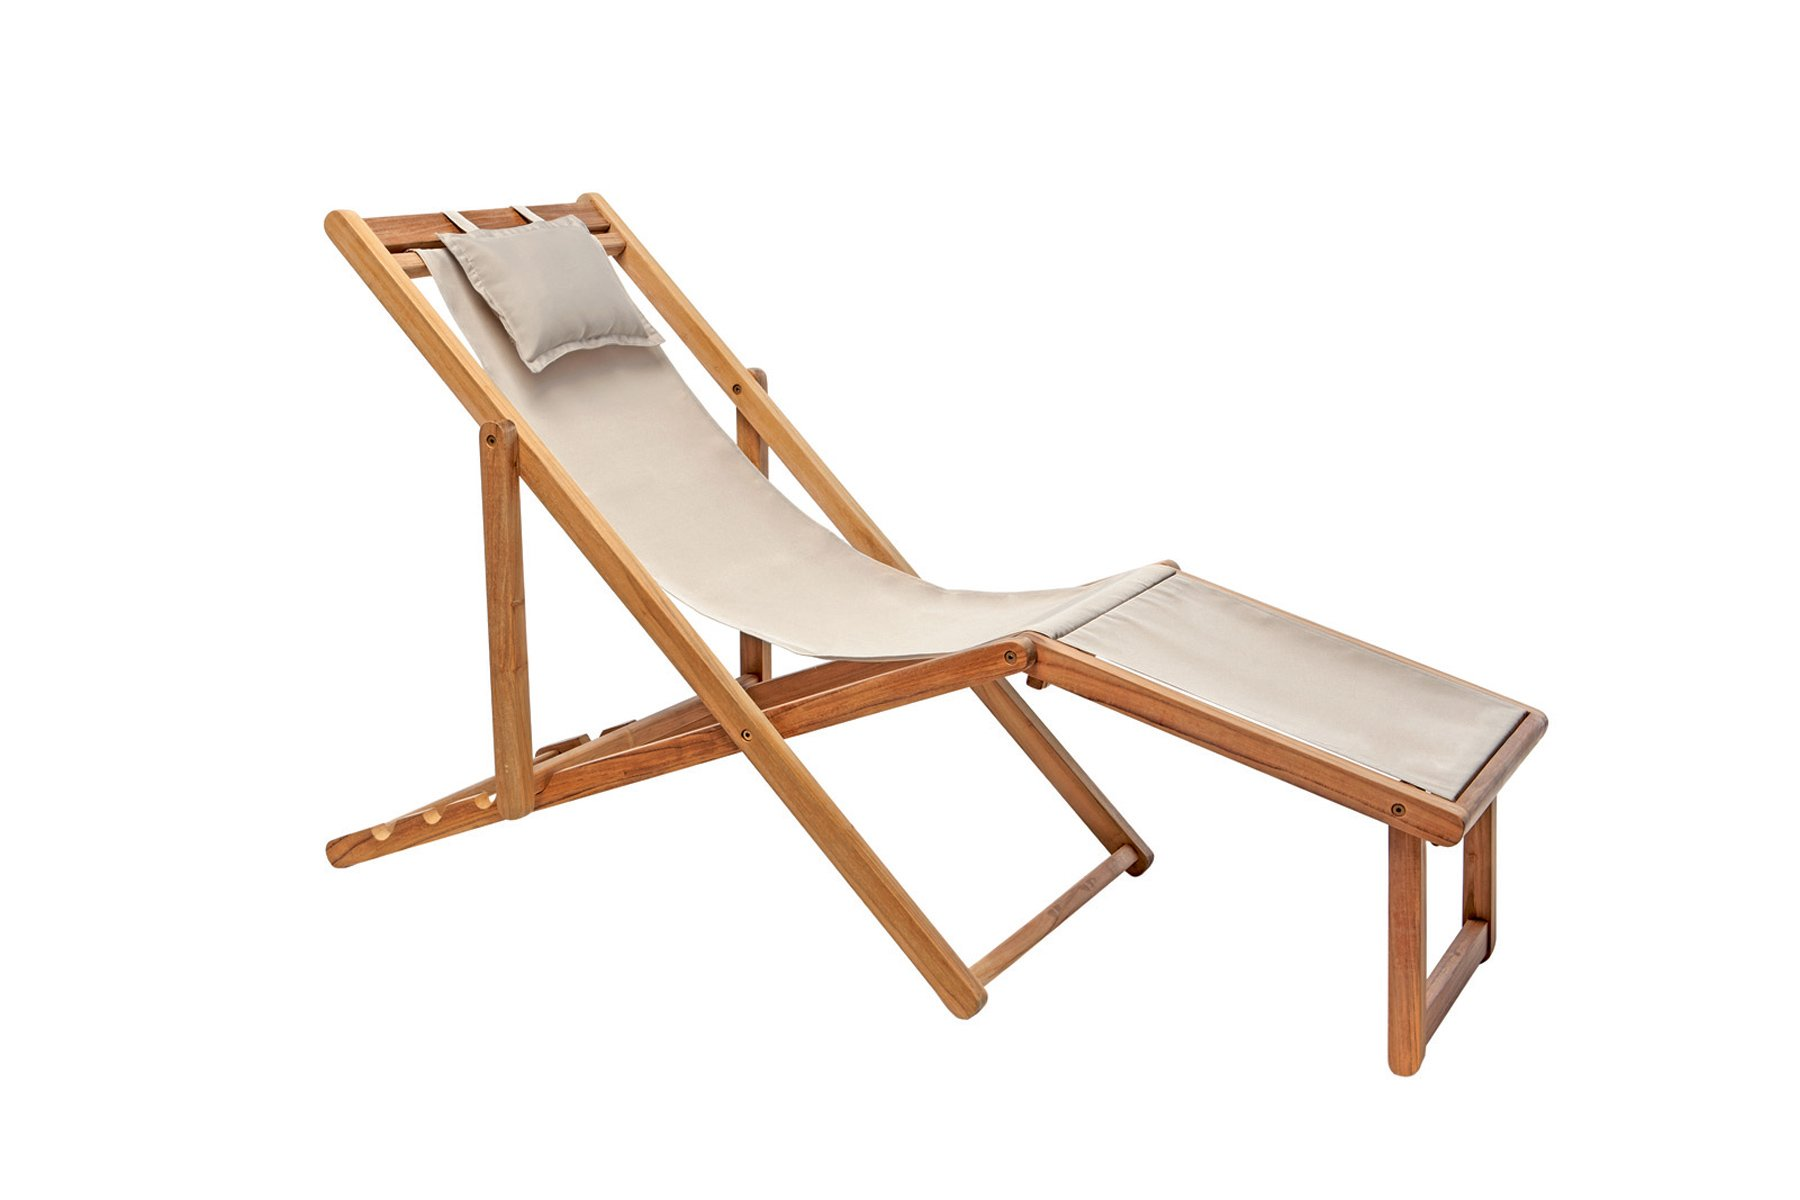 Strange Adjustable Deckchair With Leg Rest Venezia Il Giardino Di Legno Gmtry Best Dining Table And Chair Ideas Images Gmtryco